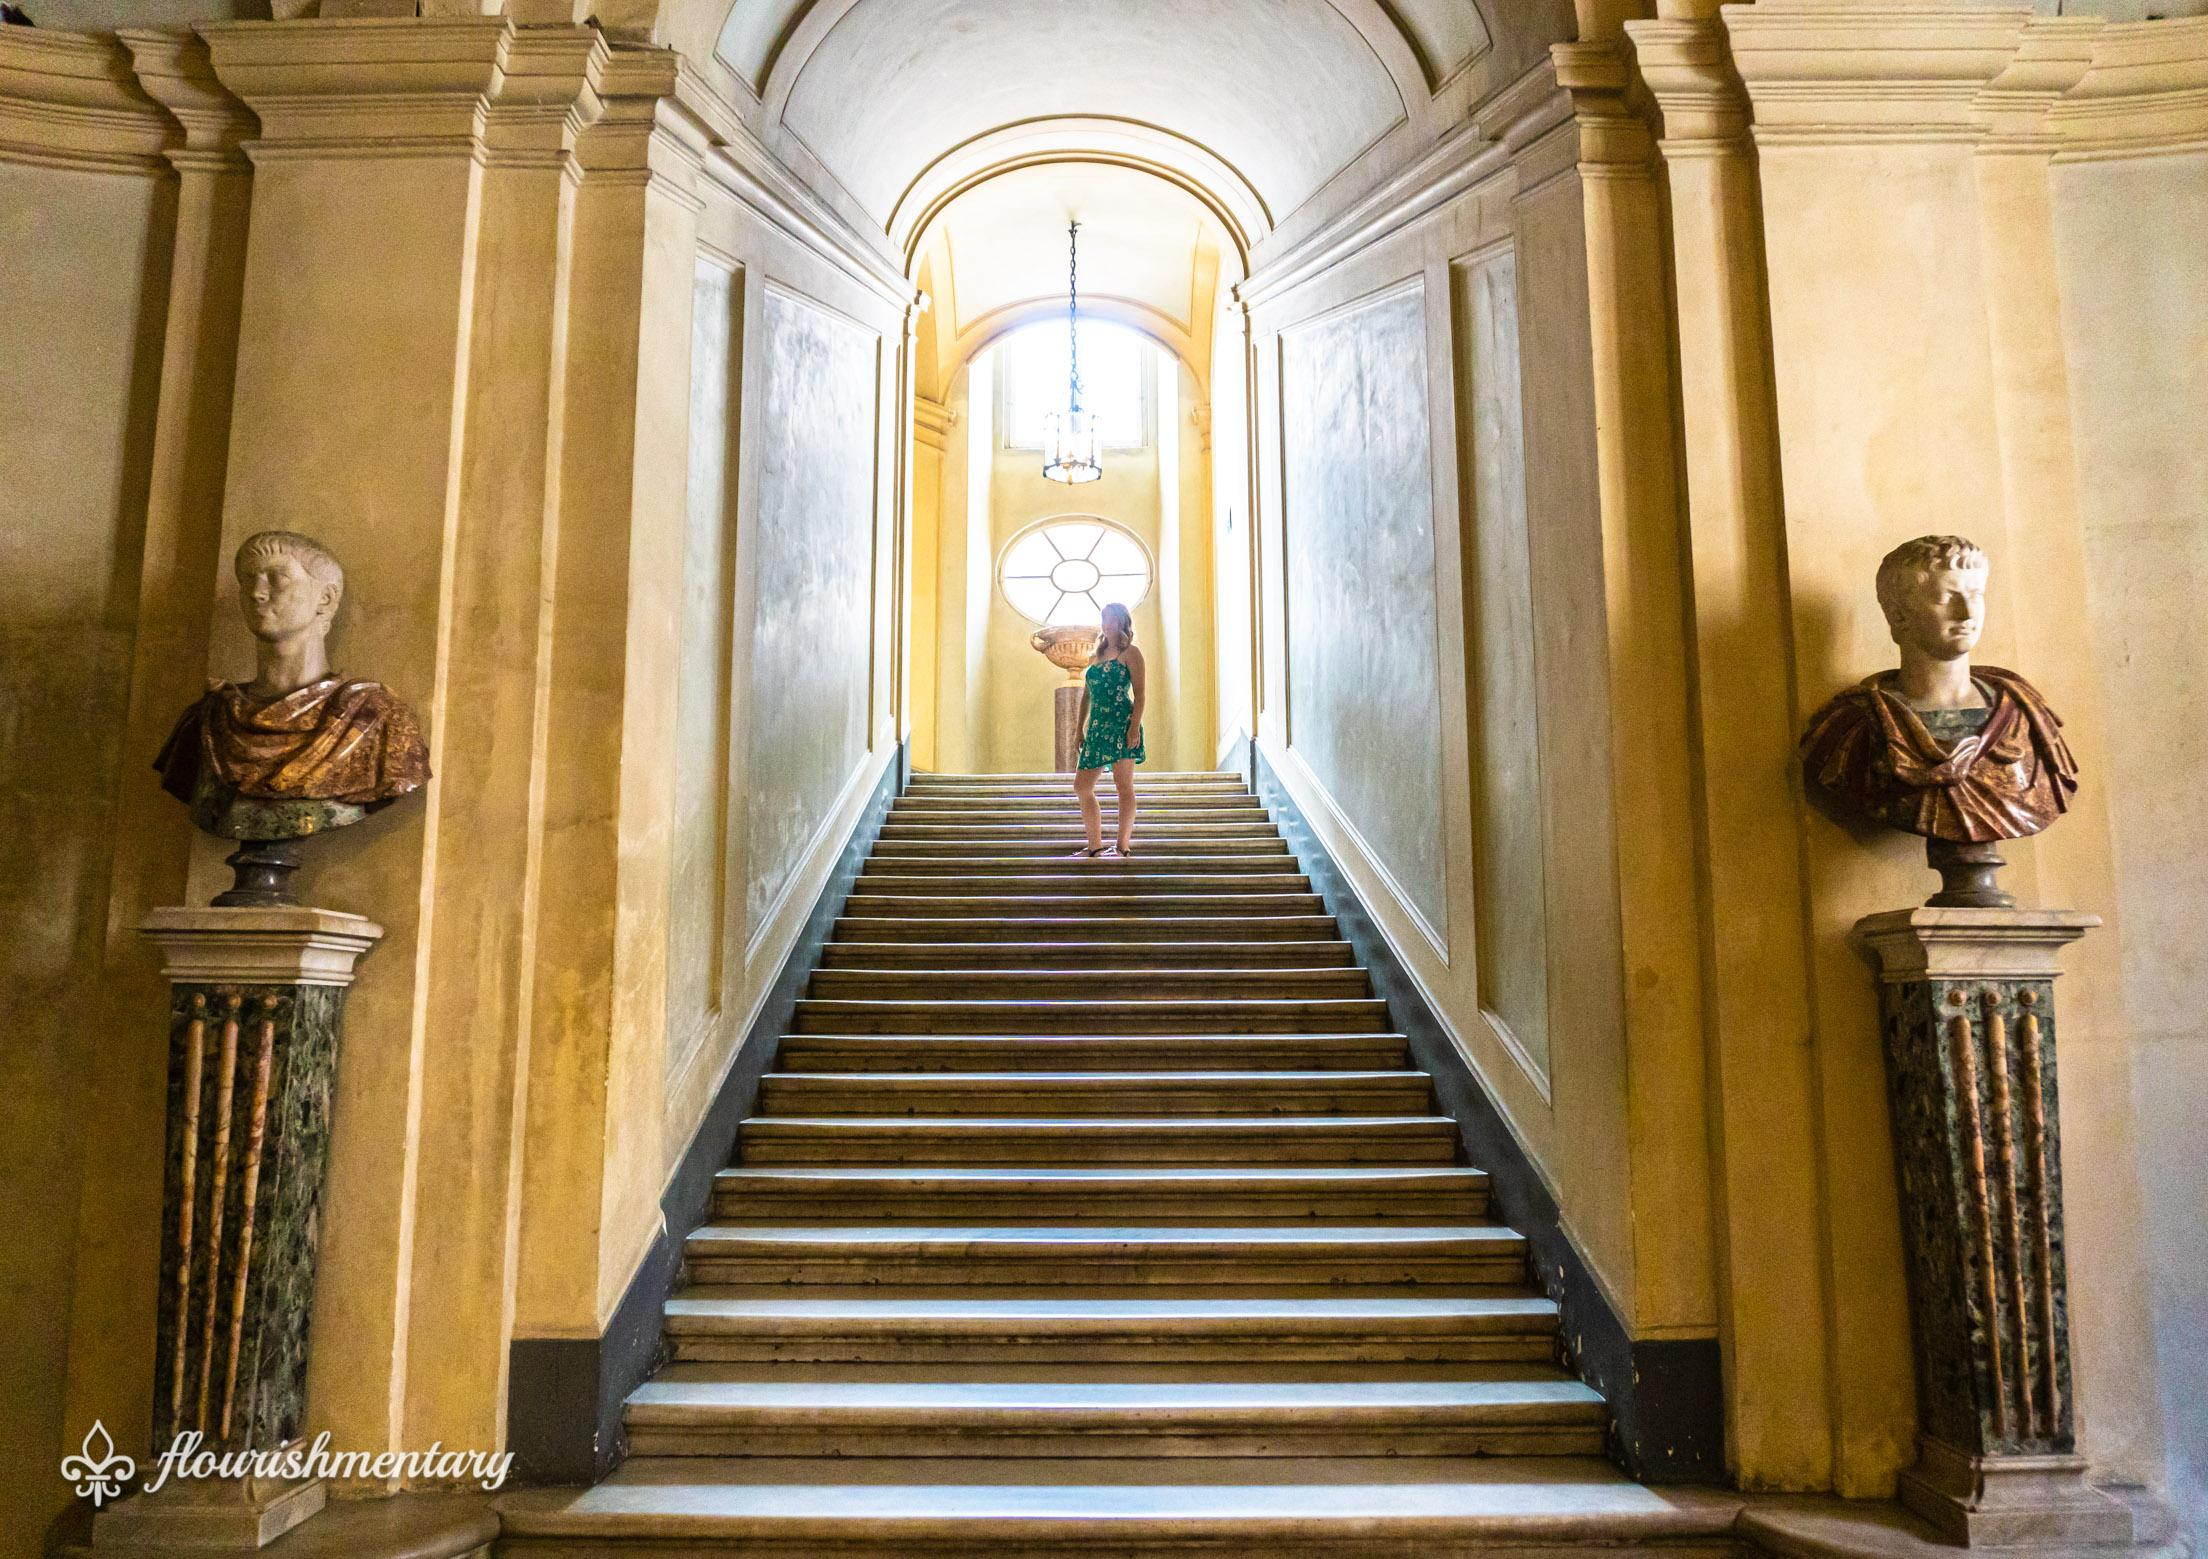 the entryway Doria Pamphilj gallery